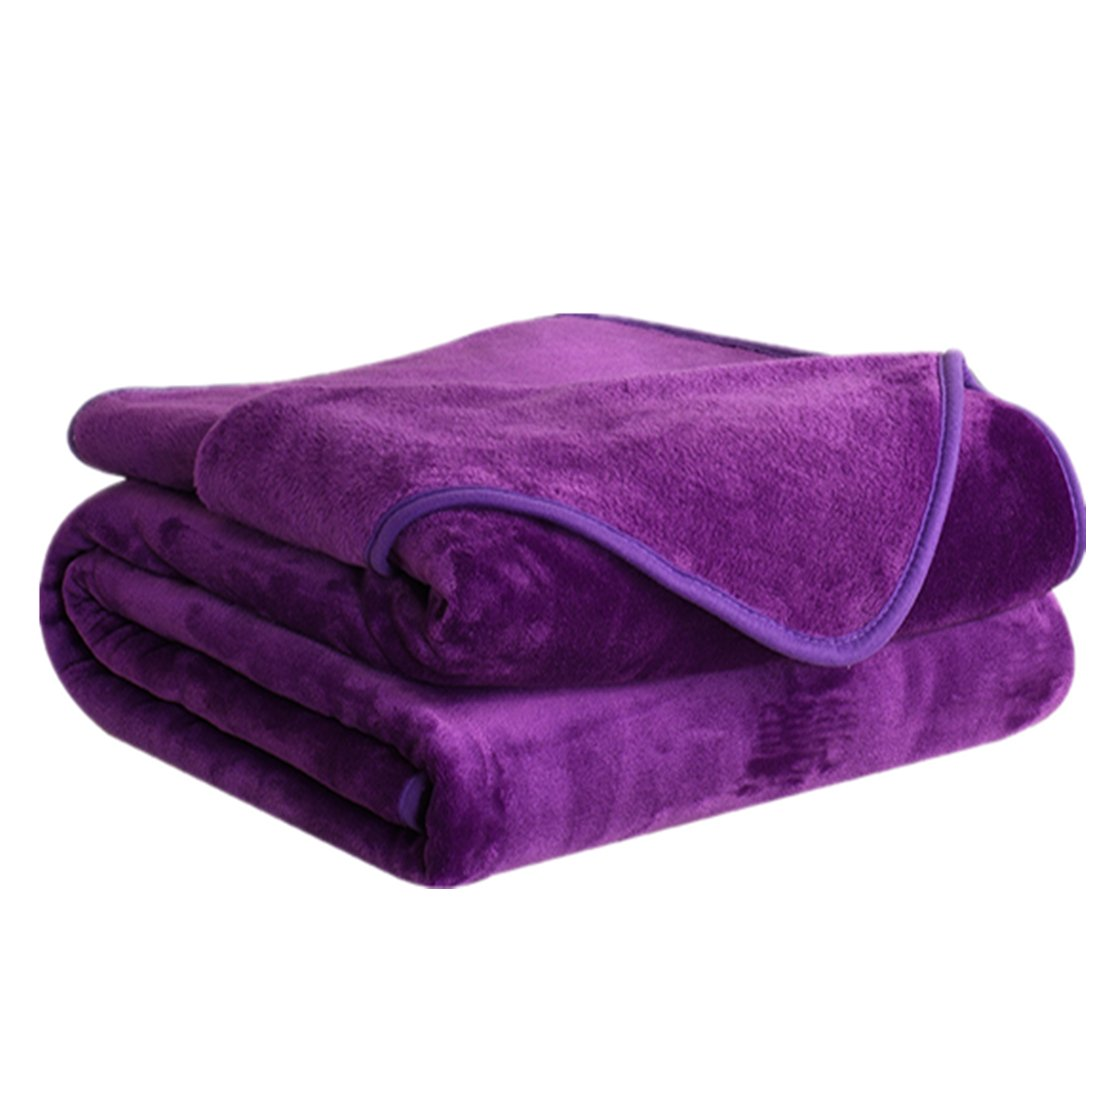 DREAMFLYLIFE Fleece Blanket 380 GSM Anti-Static Super Soft Lightweight Summer Cooling Warm Fuzzy Bed Blanket Couch Blanket (King, Purple)